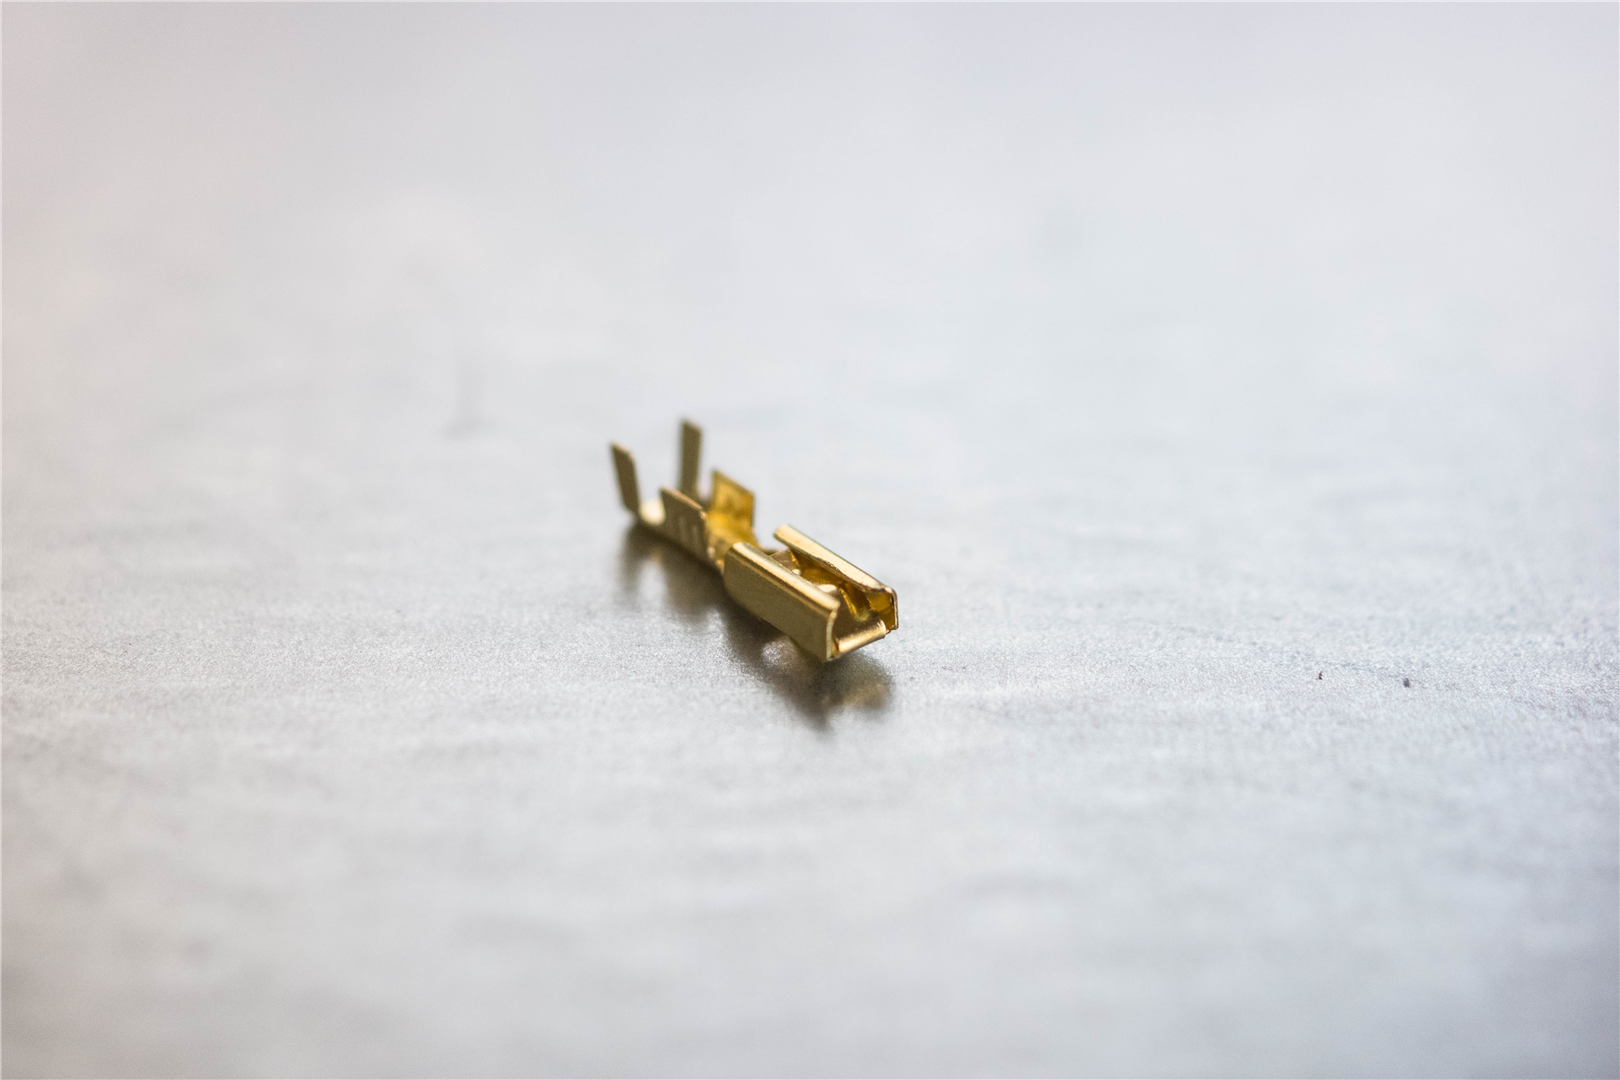 2.8mm Female Spade for Latching Connectors